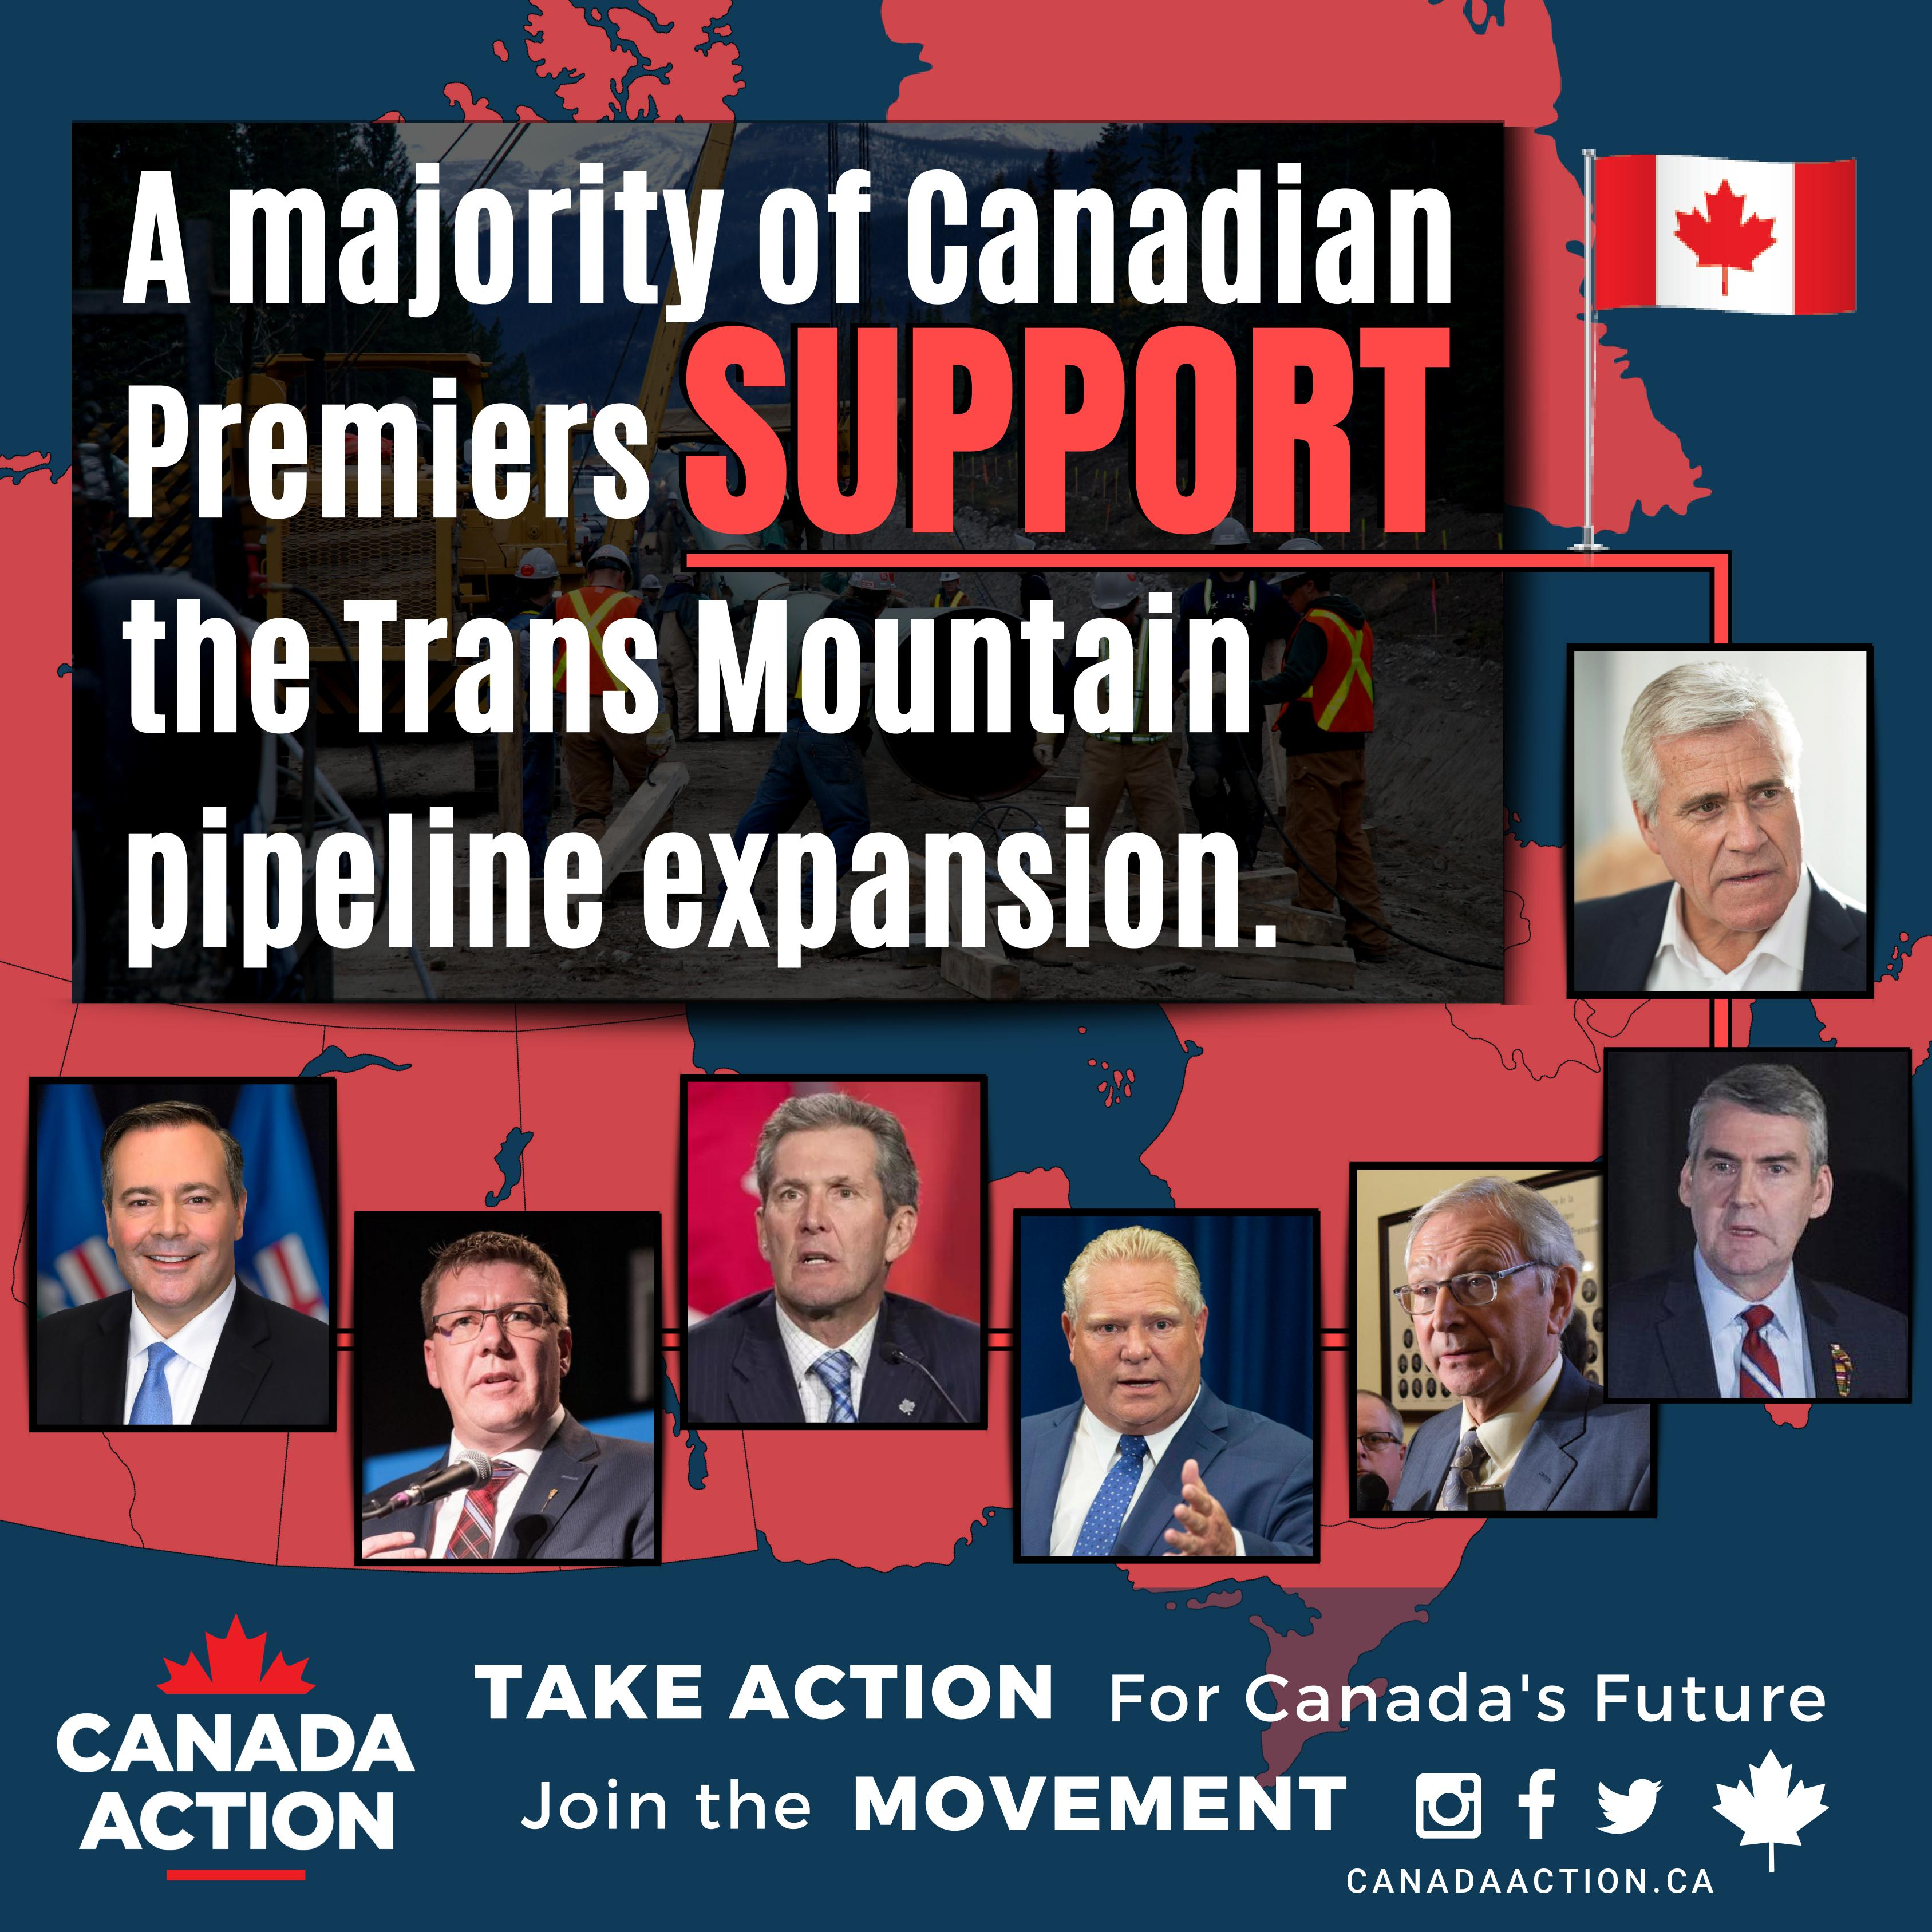 A majority of Canadian premiers support the Trans Mountain pipeline expansion